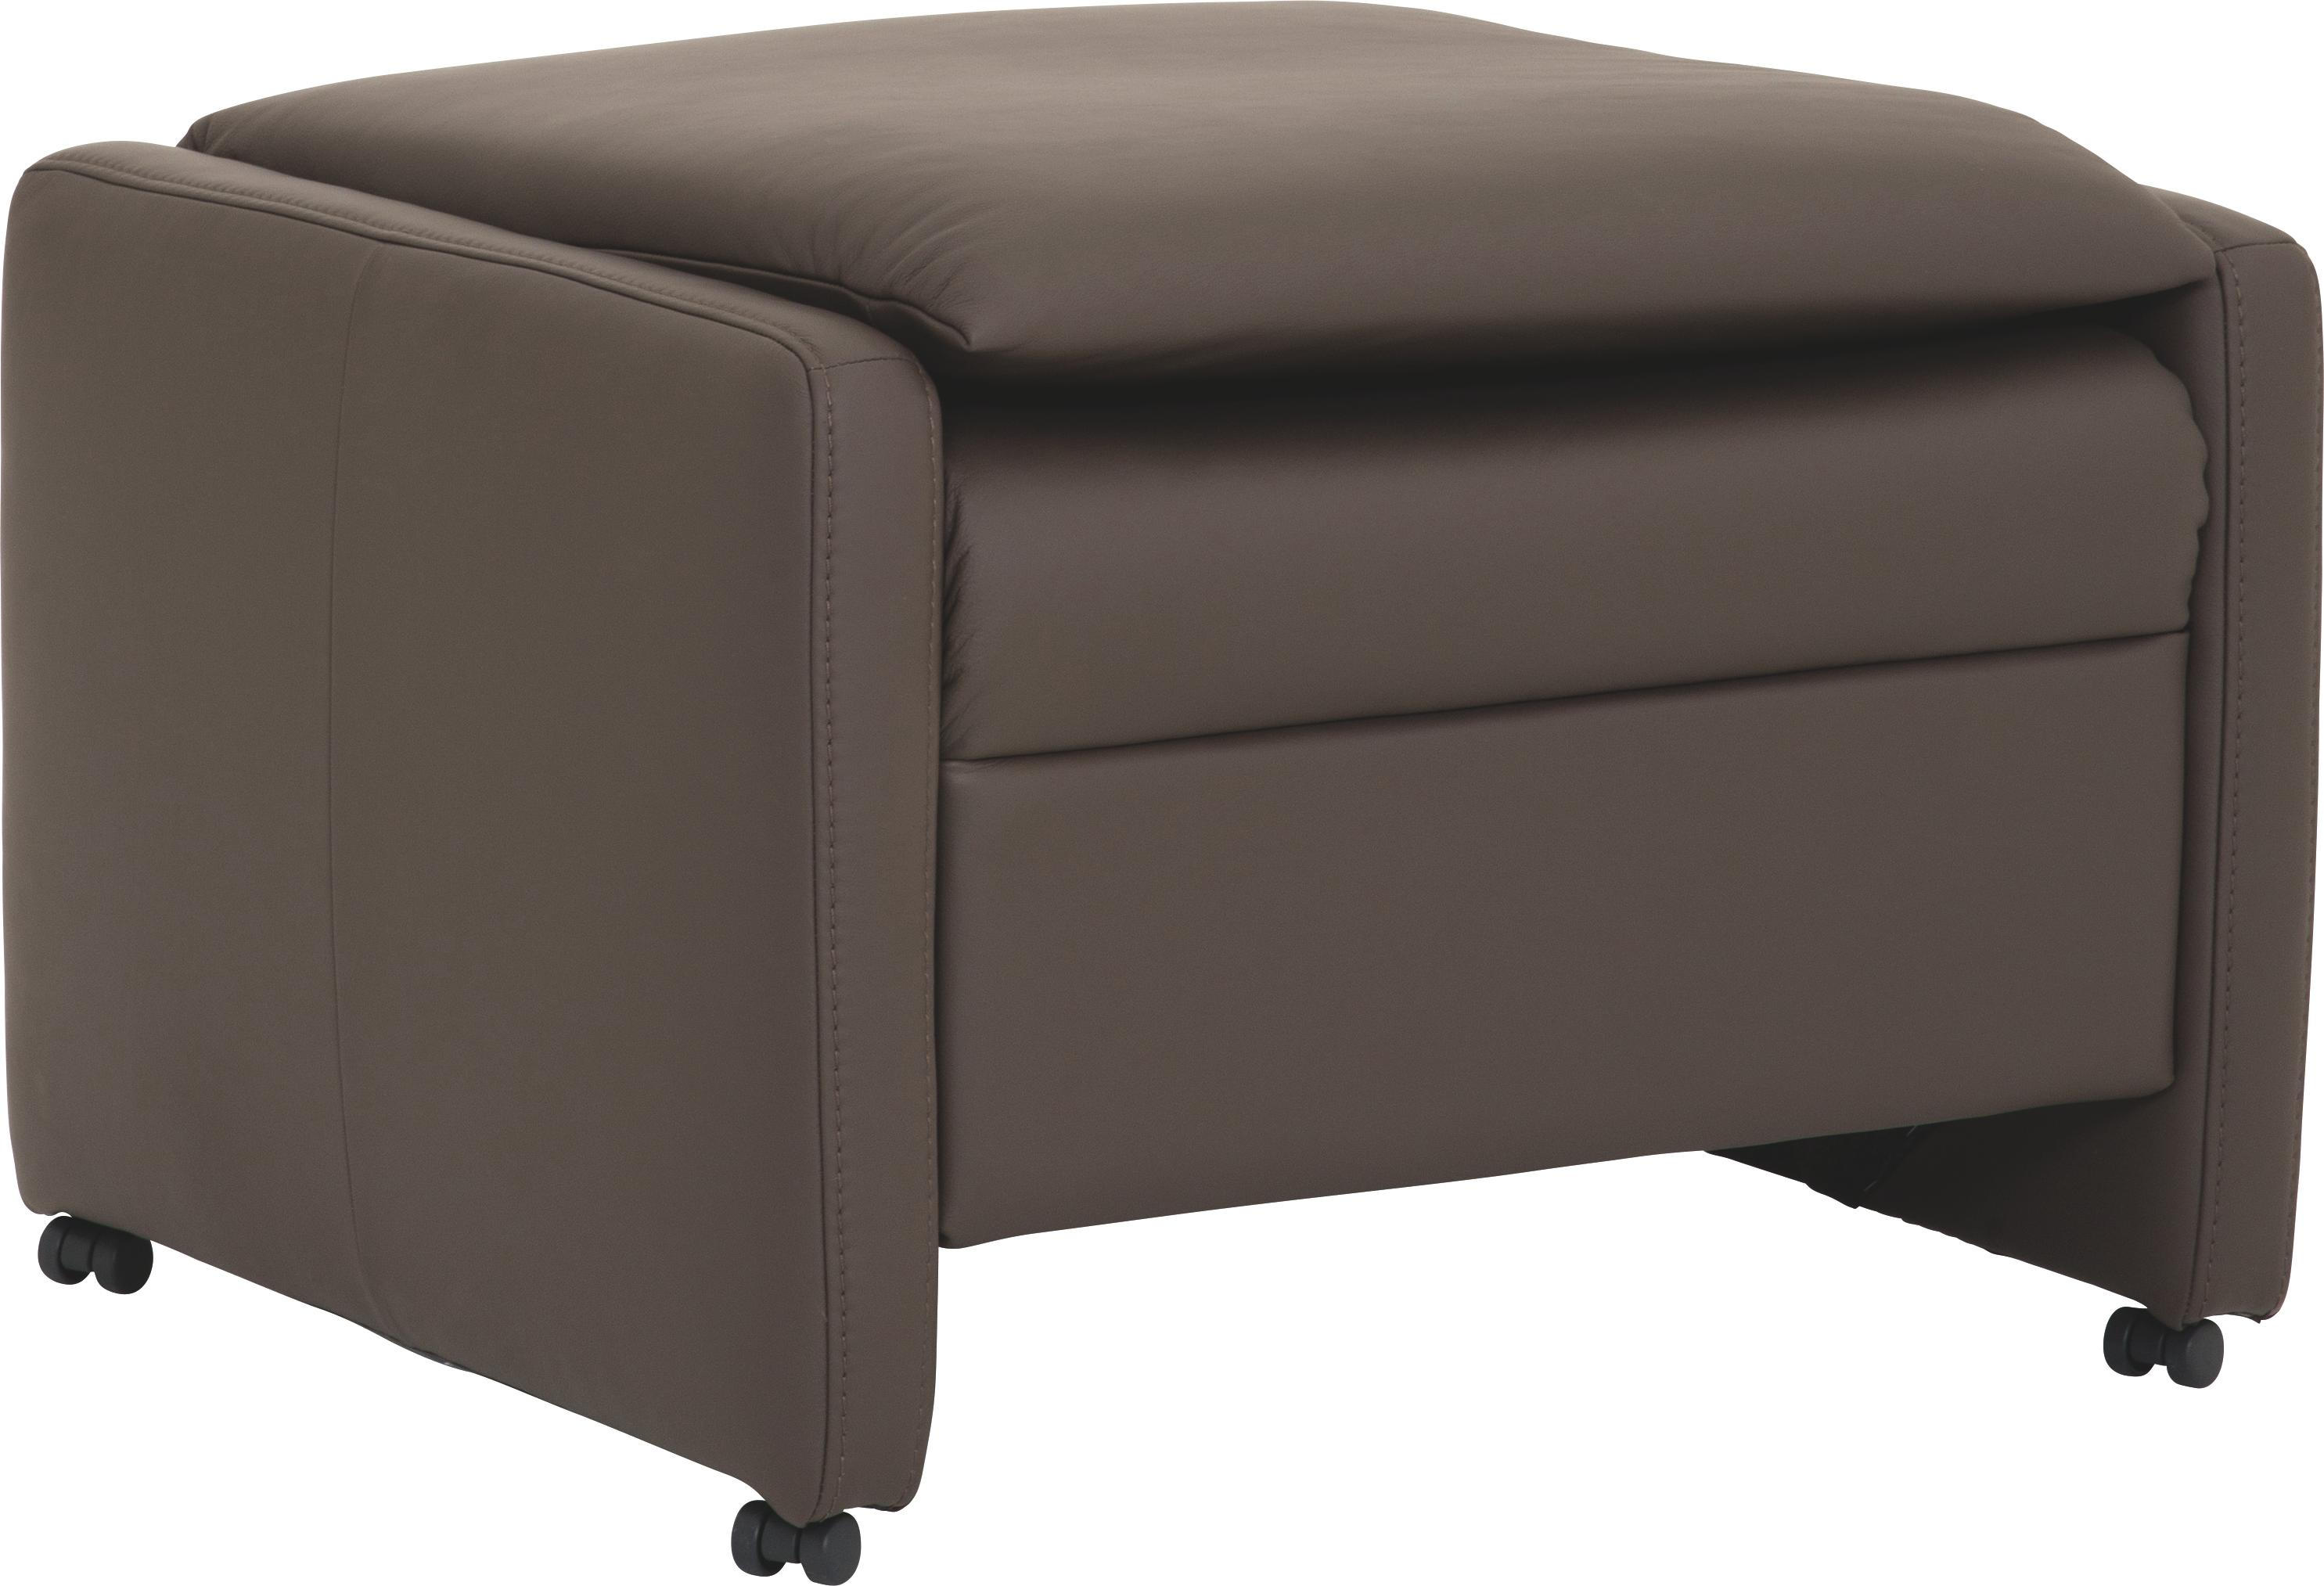 Hocker Leder Hocker In Leder Schlammfarben